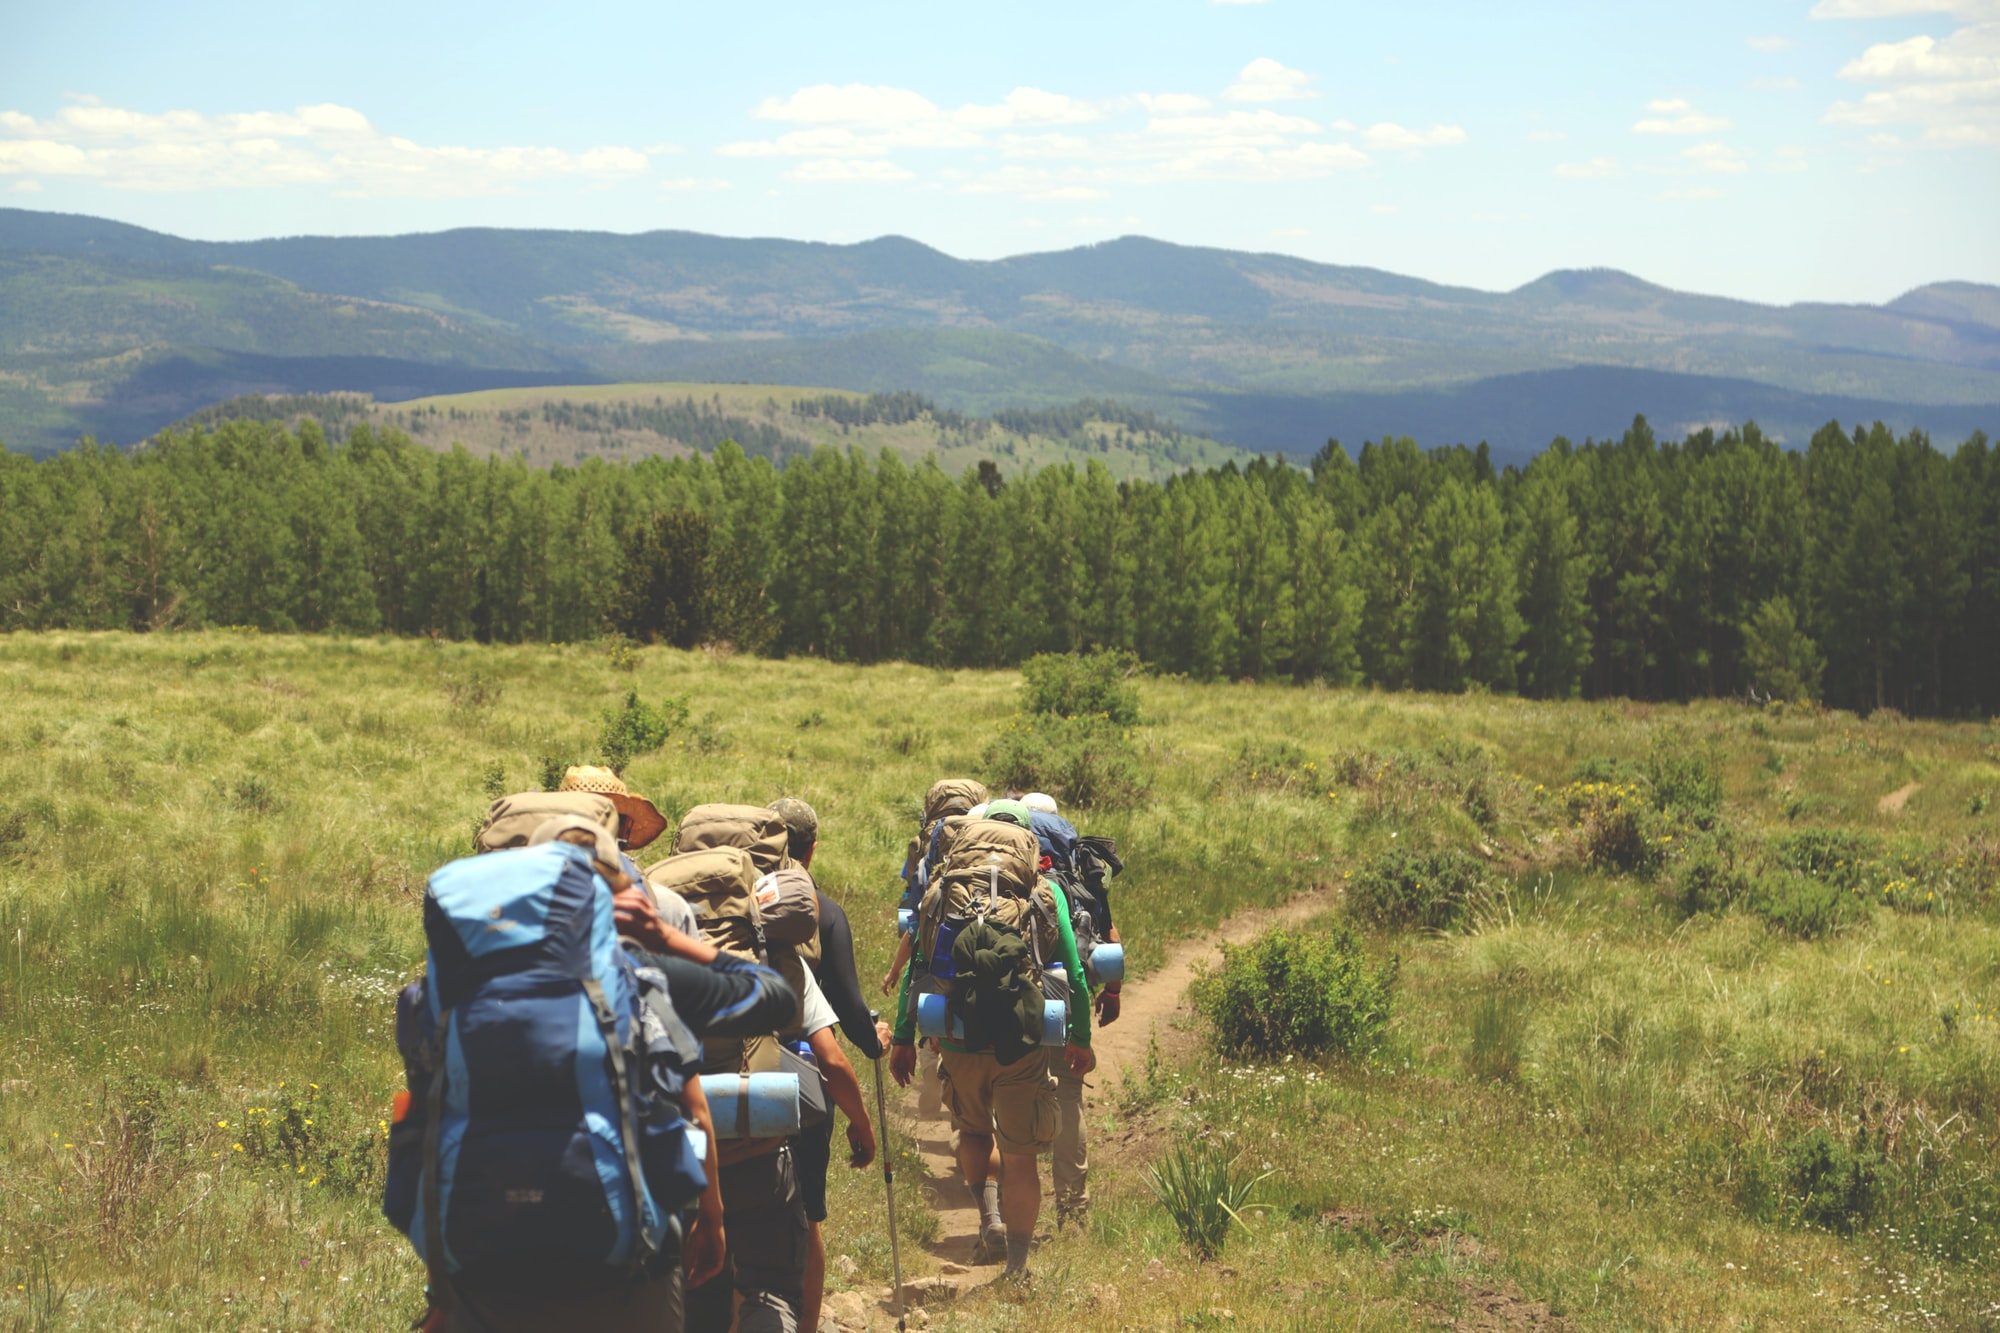 Backpackers following a dirt trail